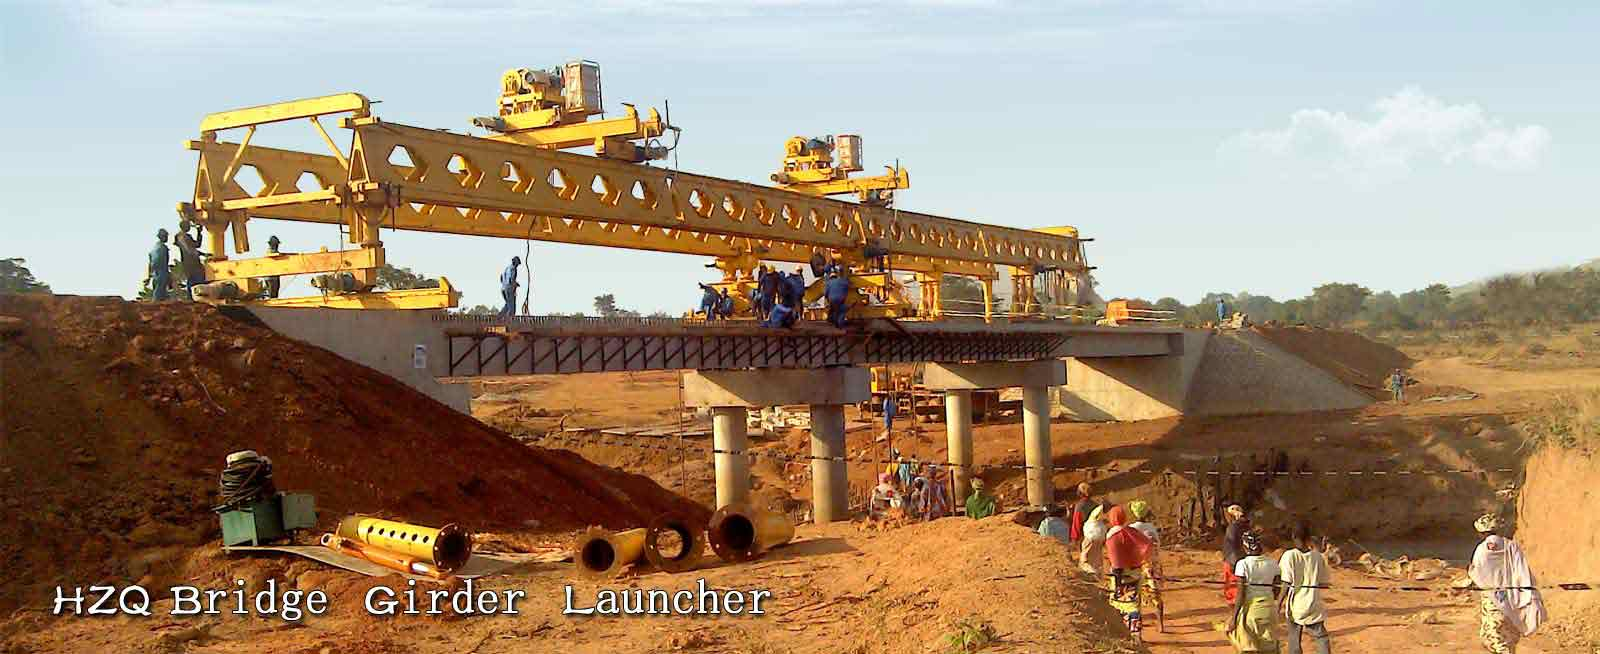 Bridge Girder Launcher for Tunnels